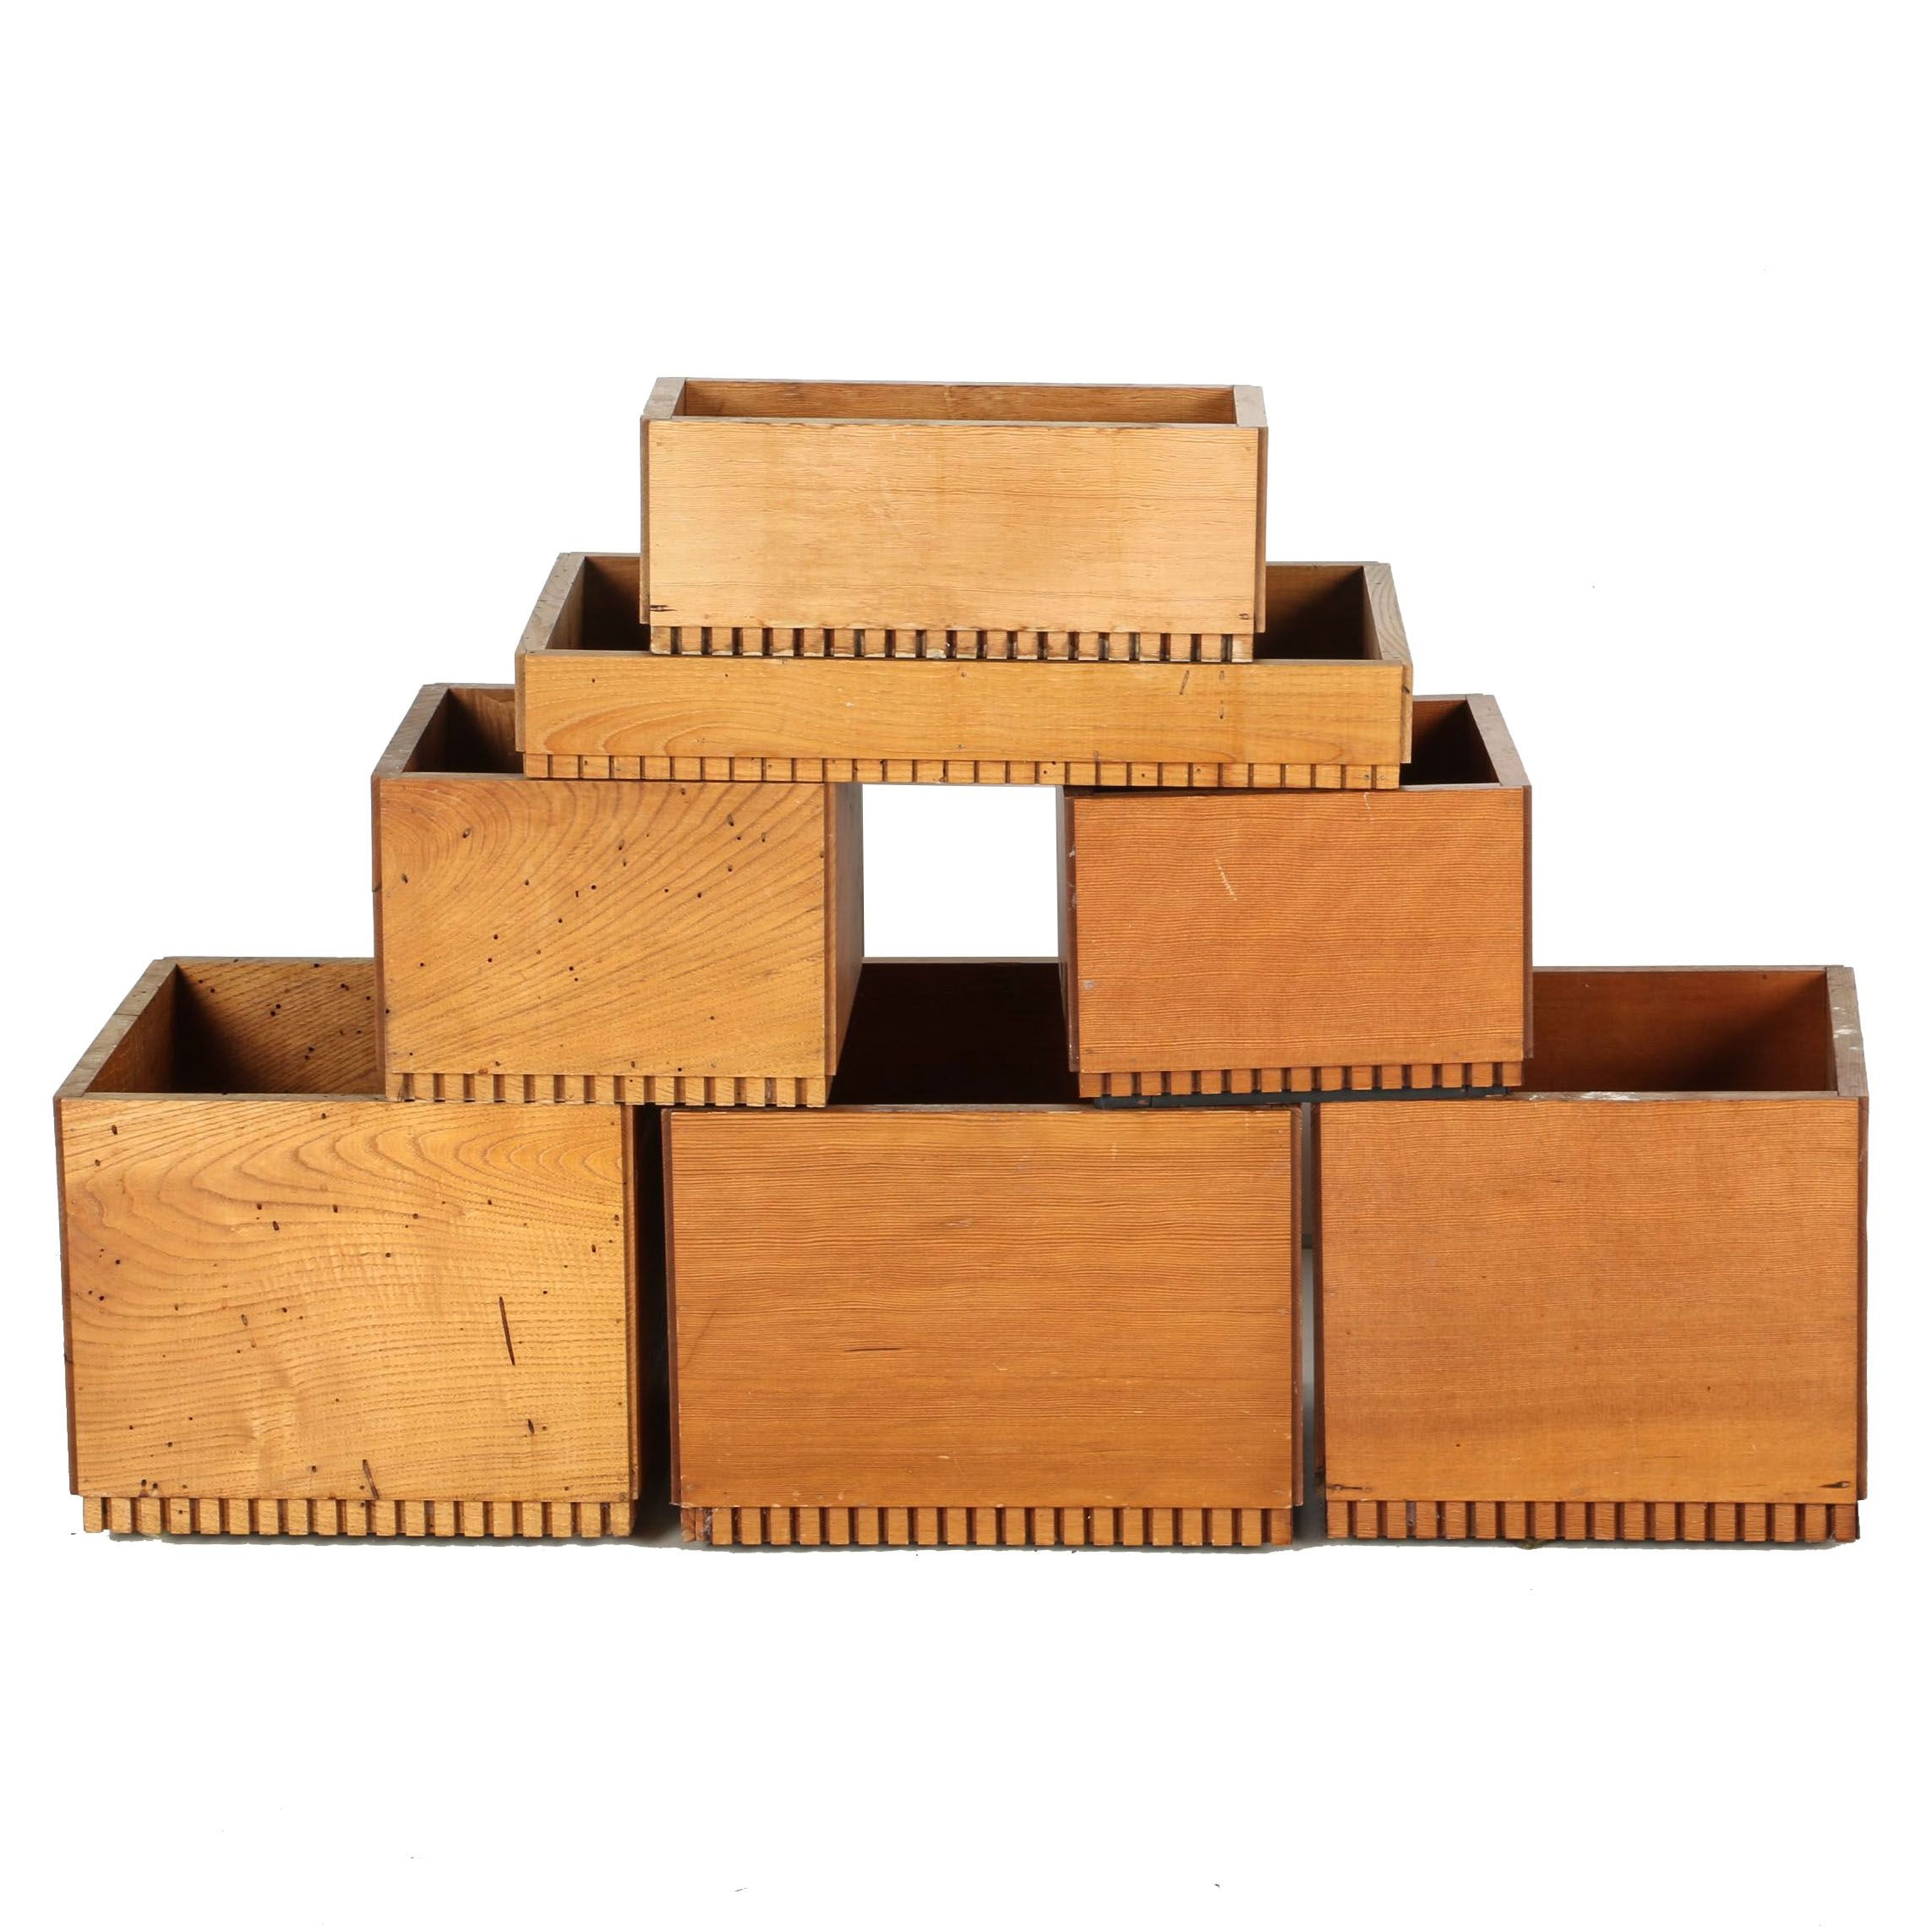 Wooden Planter Boxes Designed by Robert Metcalf